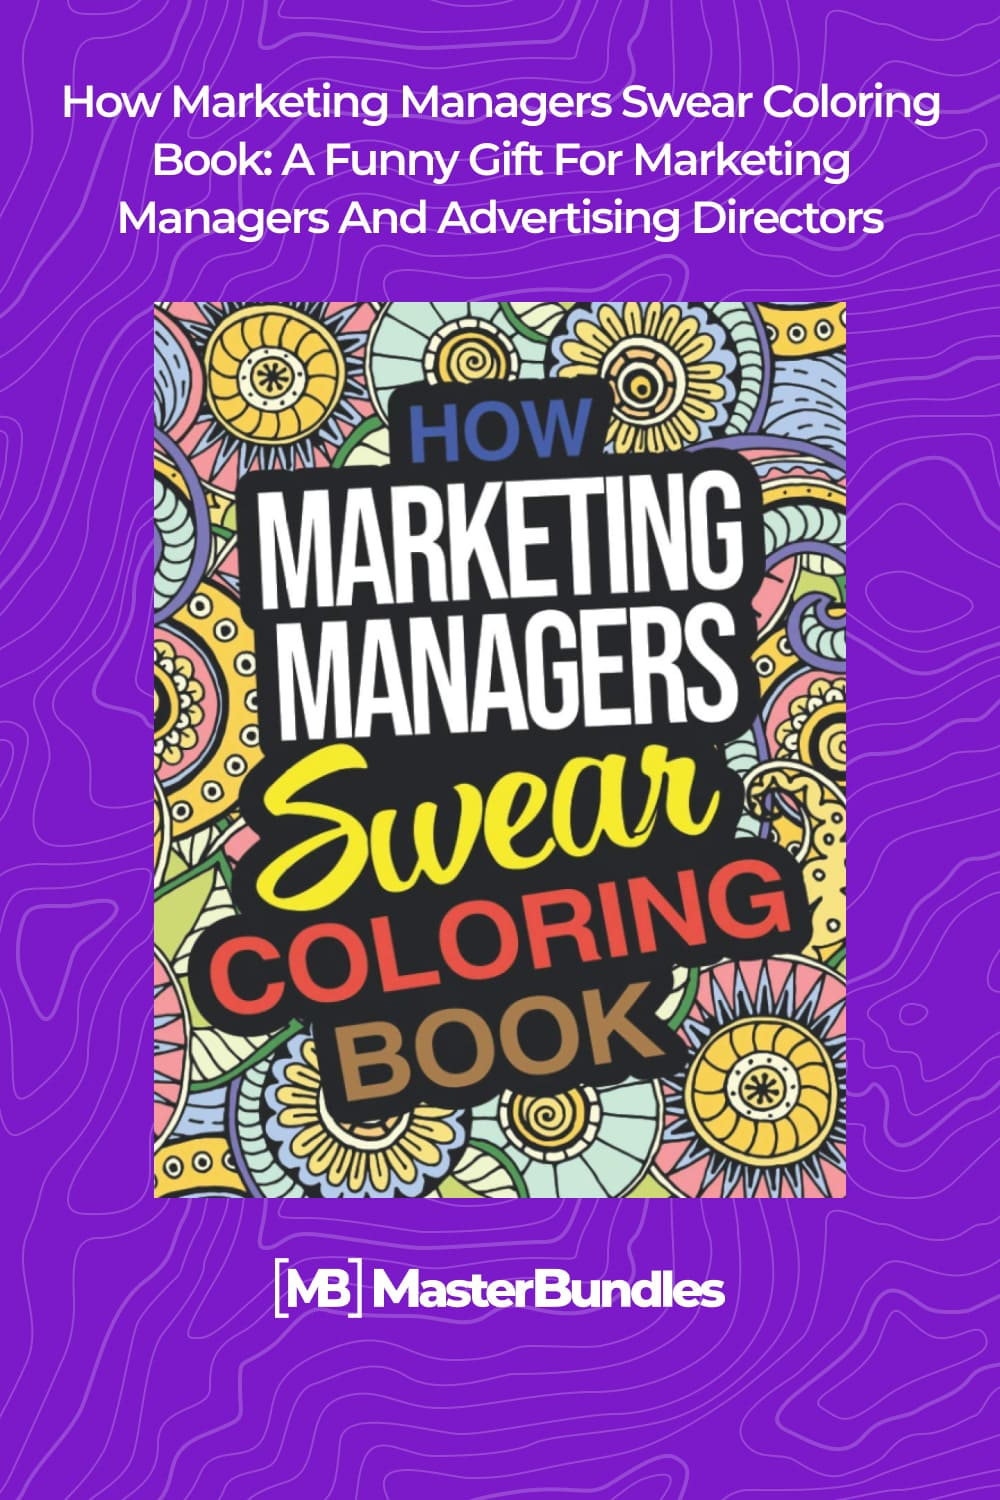 How marketing managers swear coloring book.